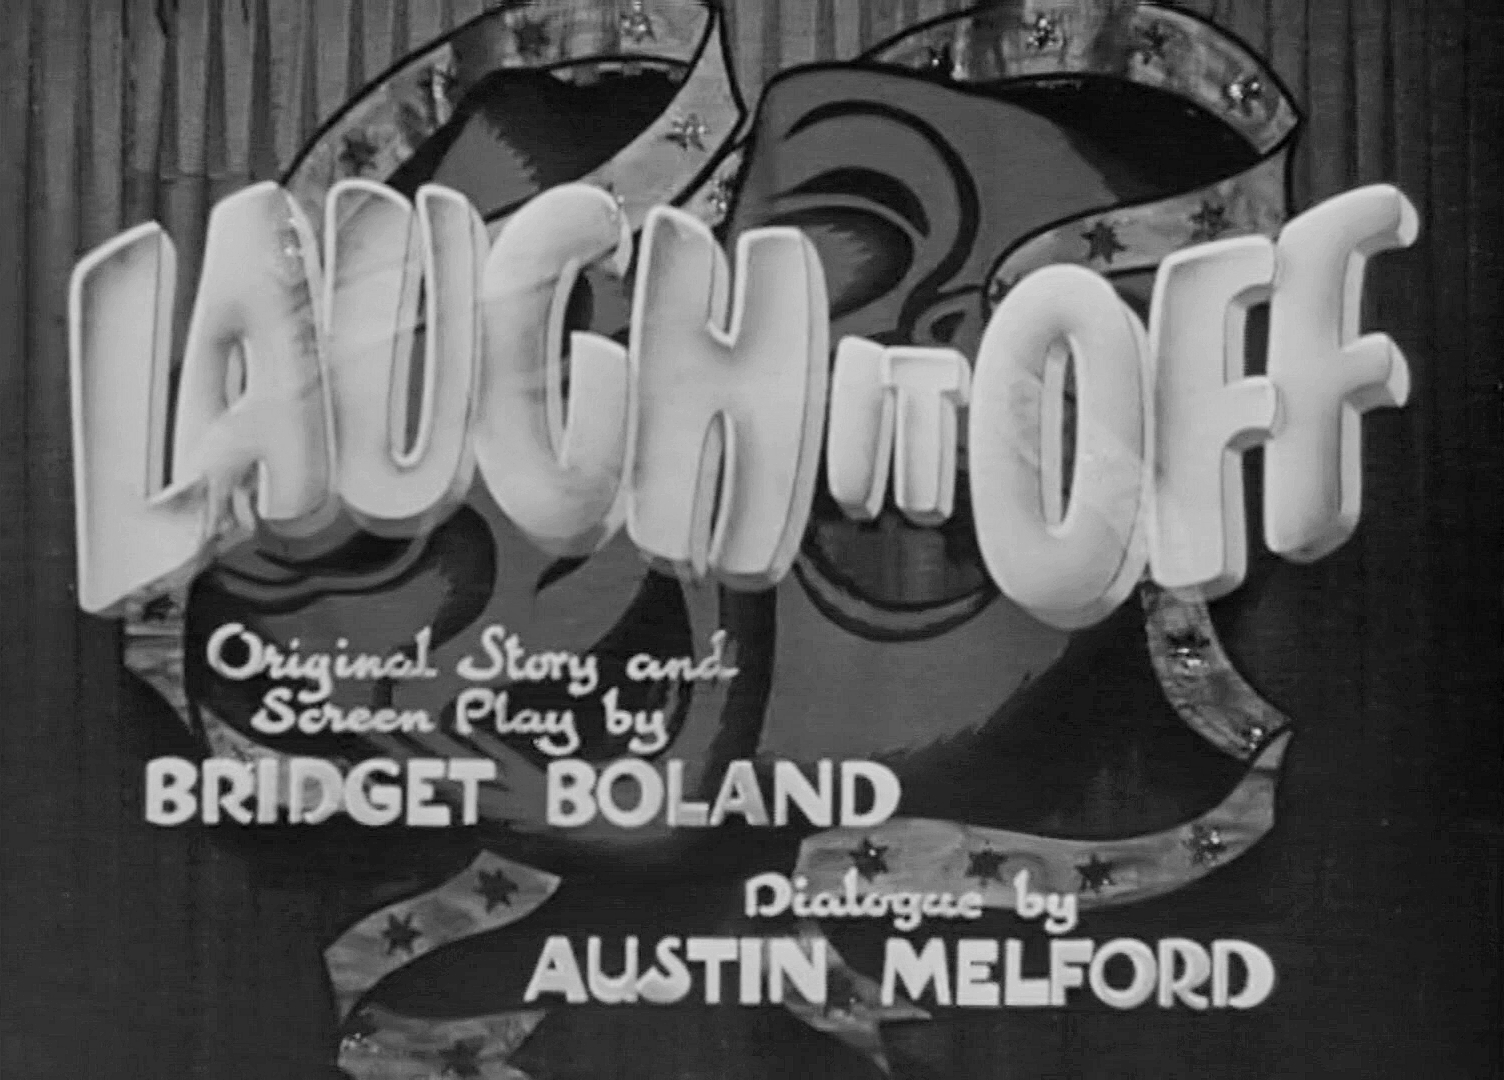 Main title from Laugh It Off (1940) (3). Original story and screen play by Bridget Boland